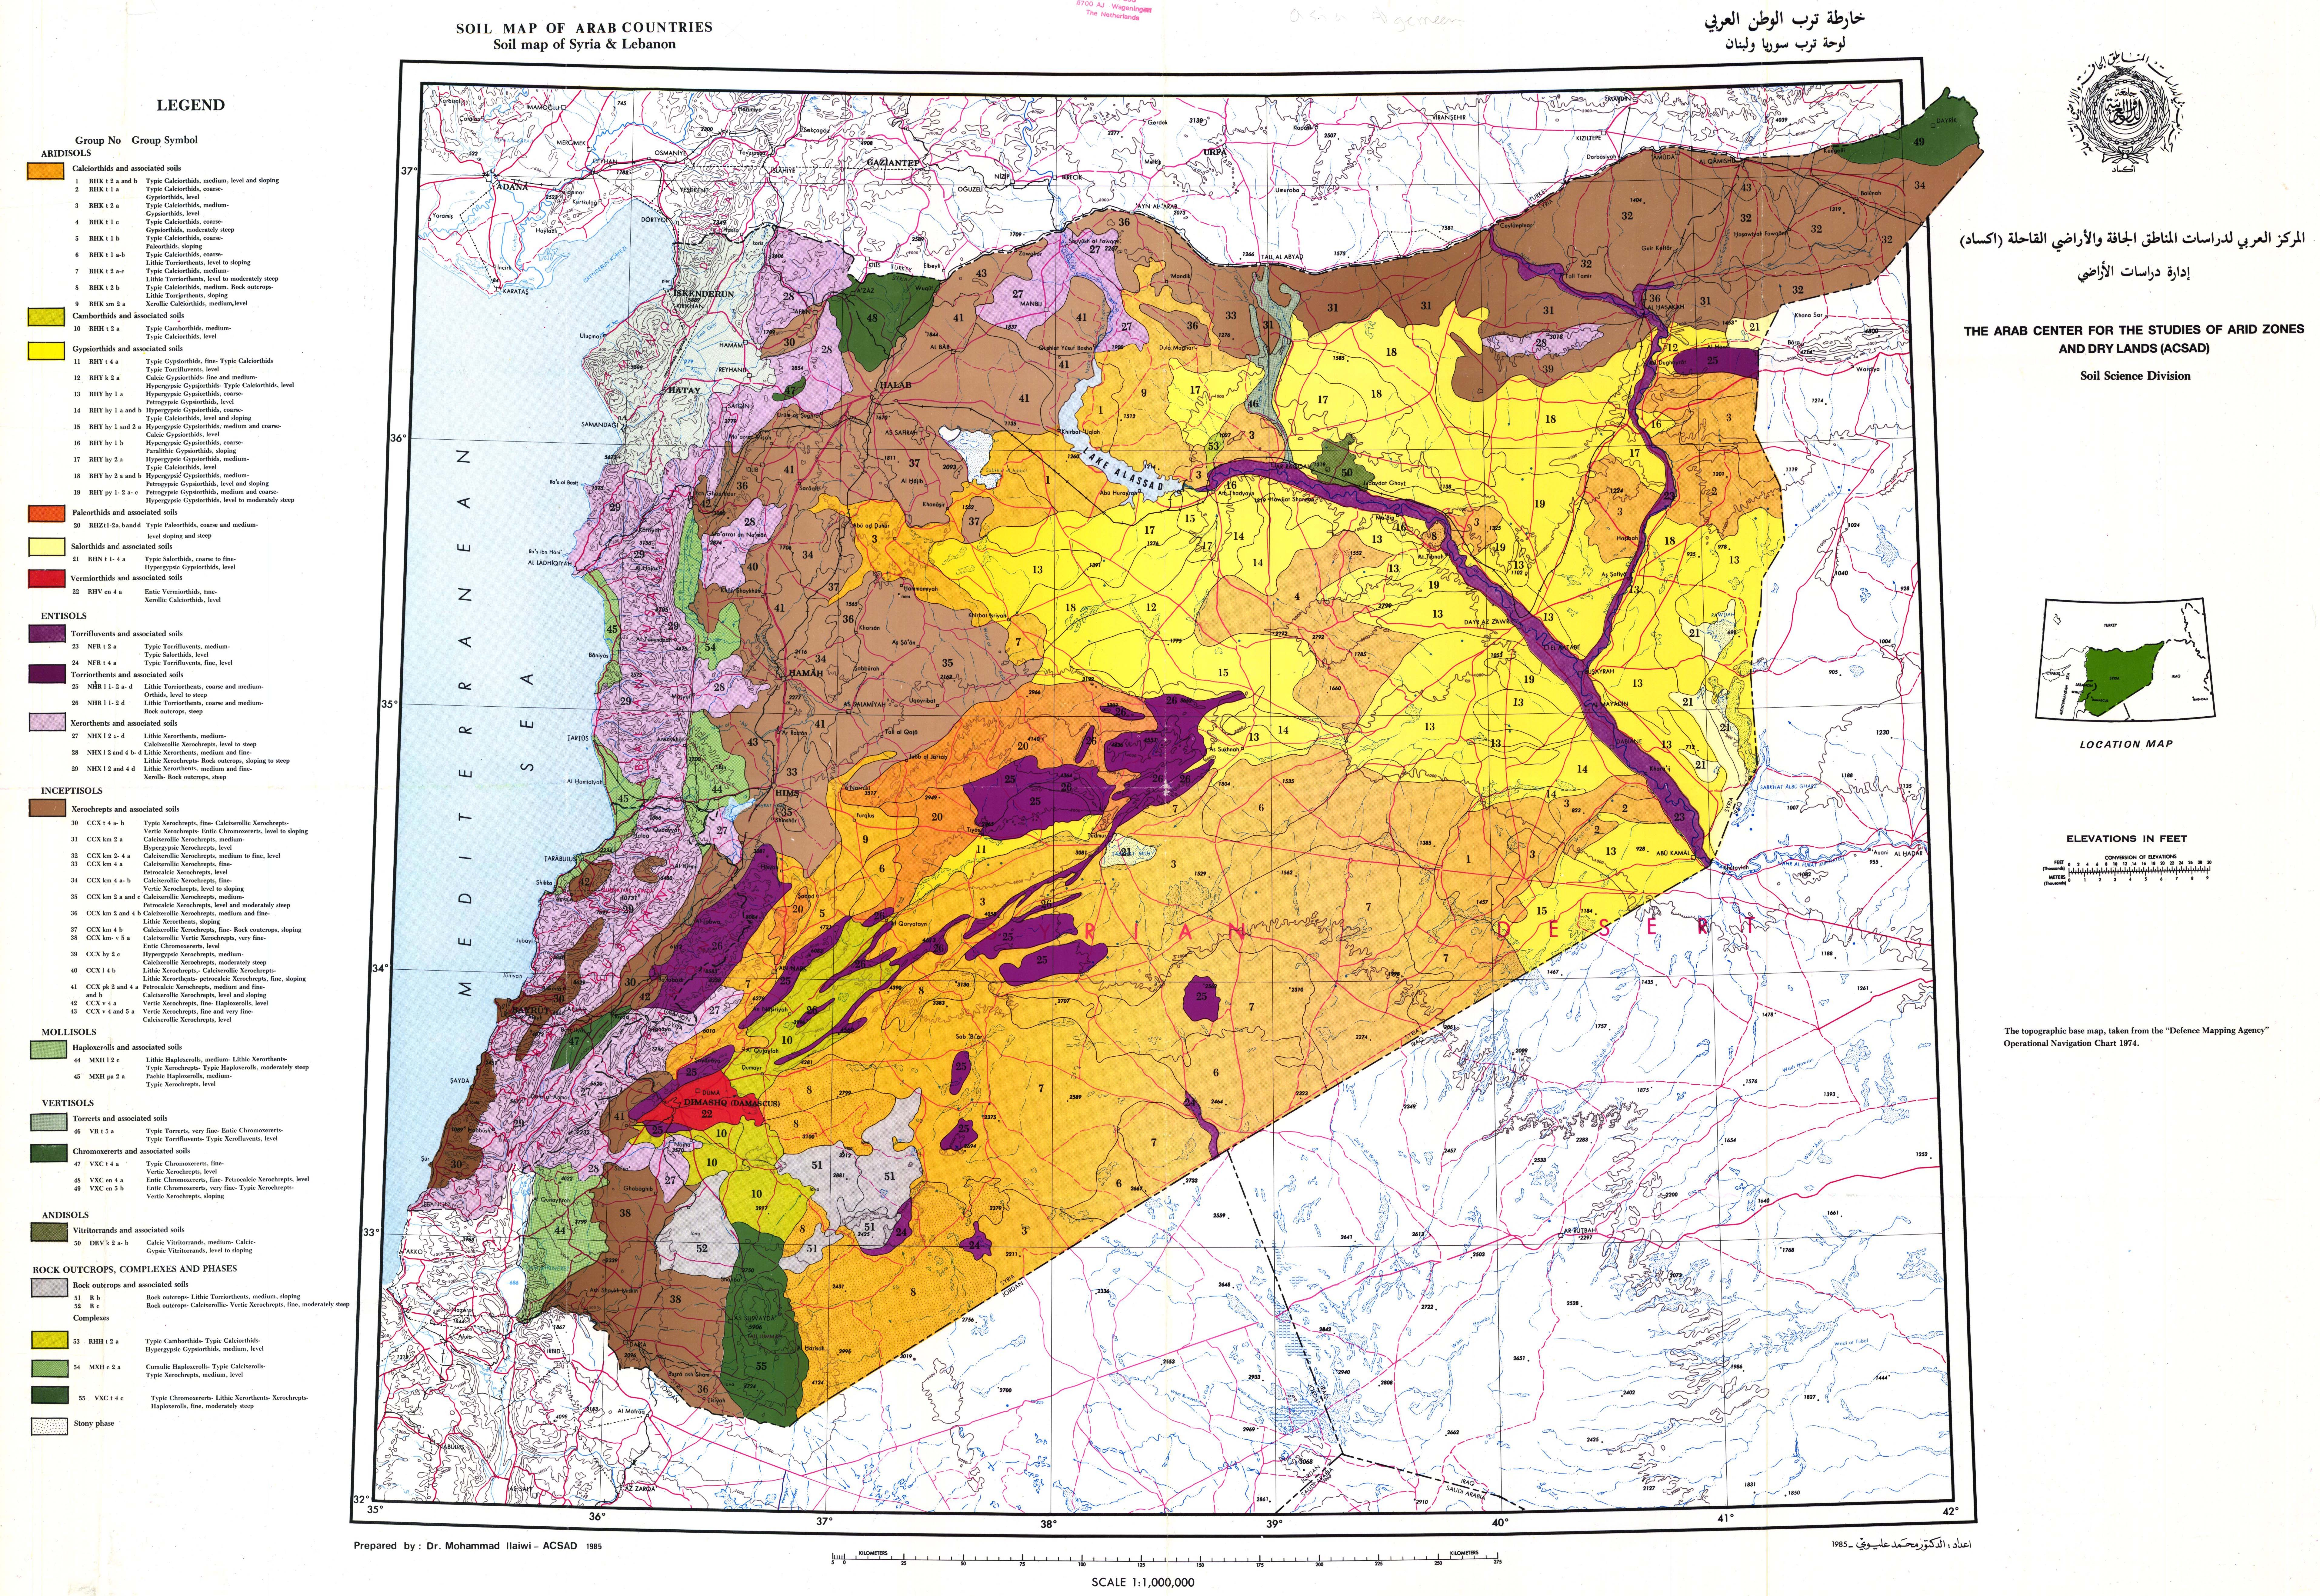 Soil map of arab countries soil map of syria lebanon esdac download gumiabroncs Images